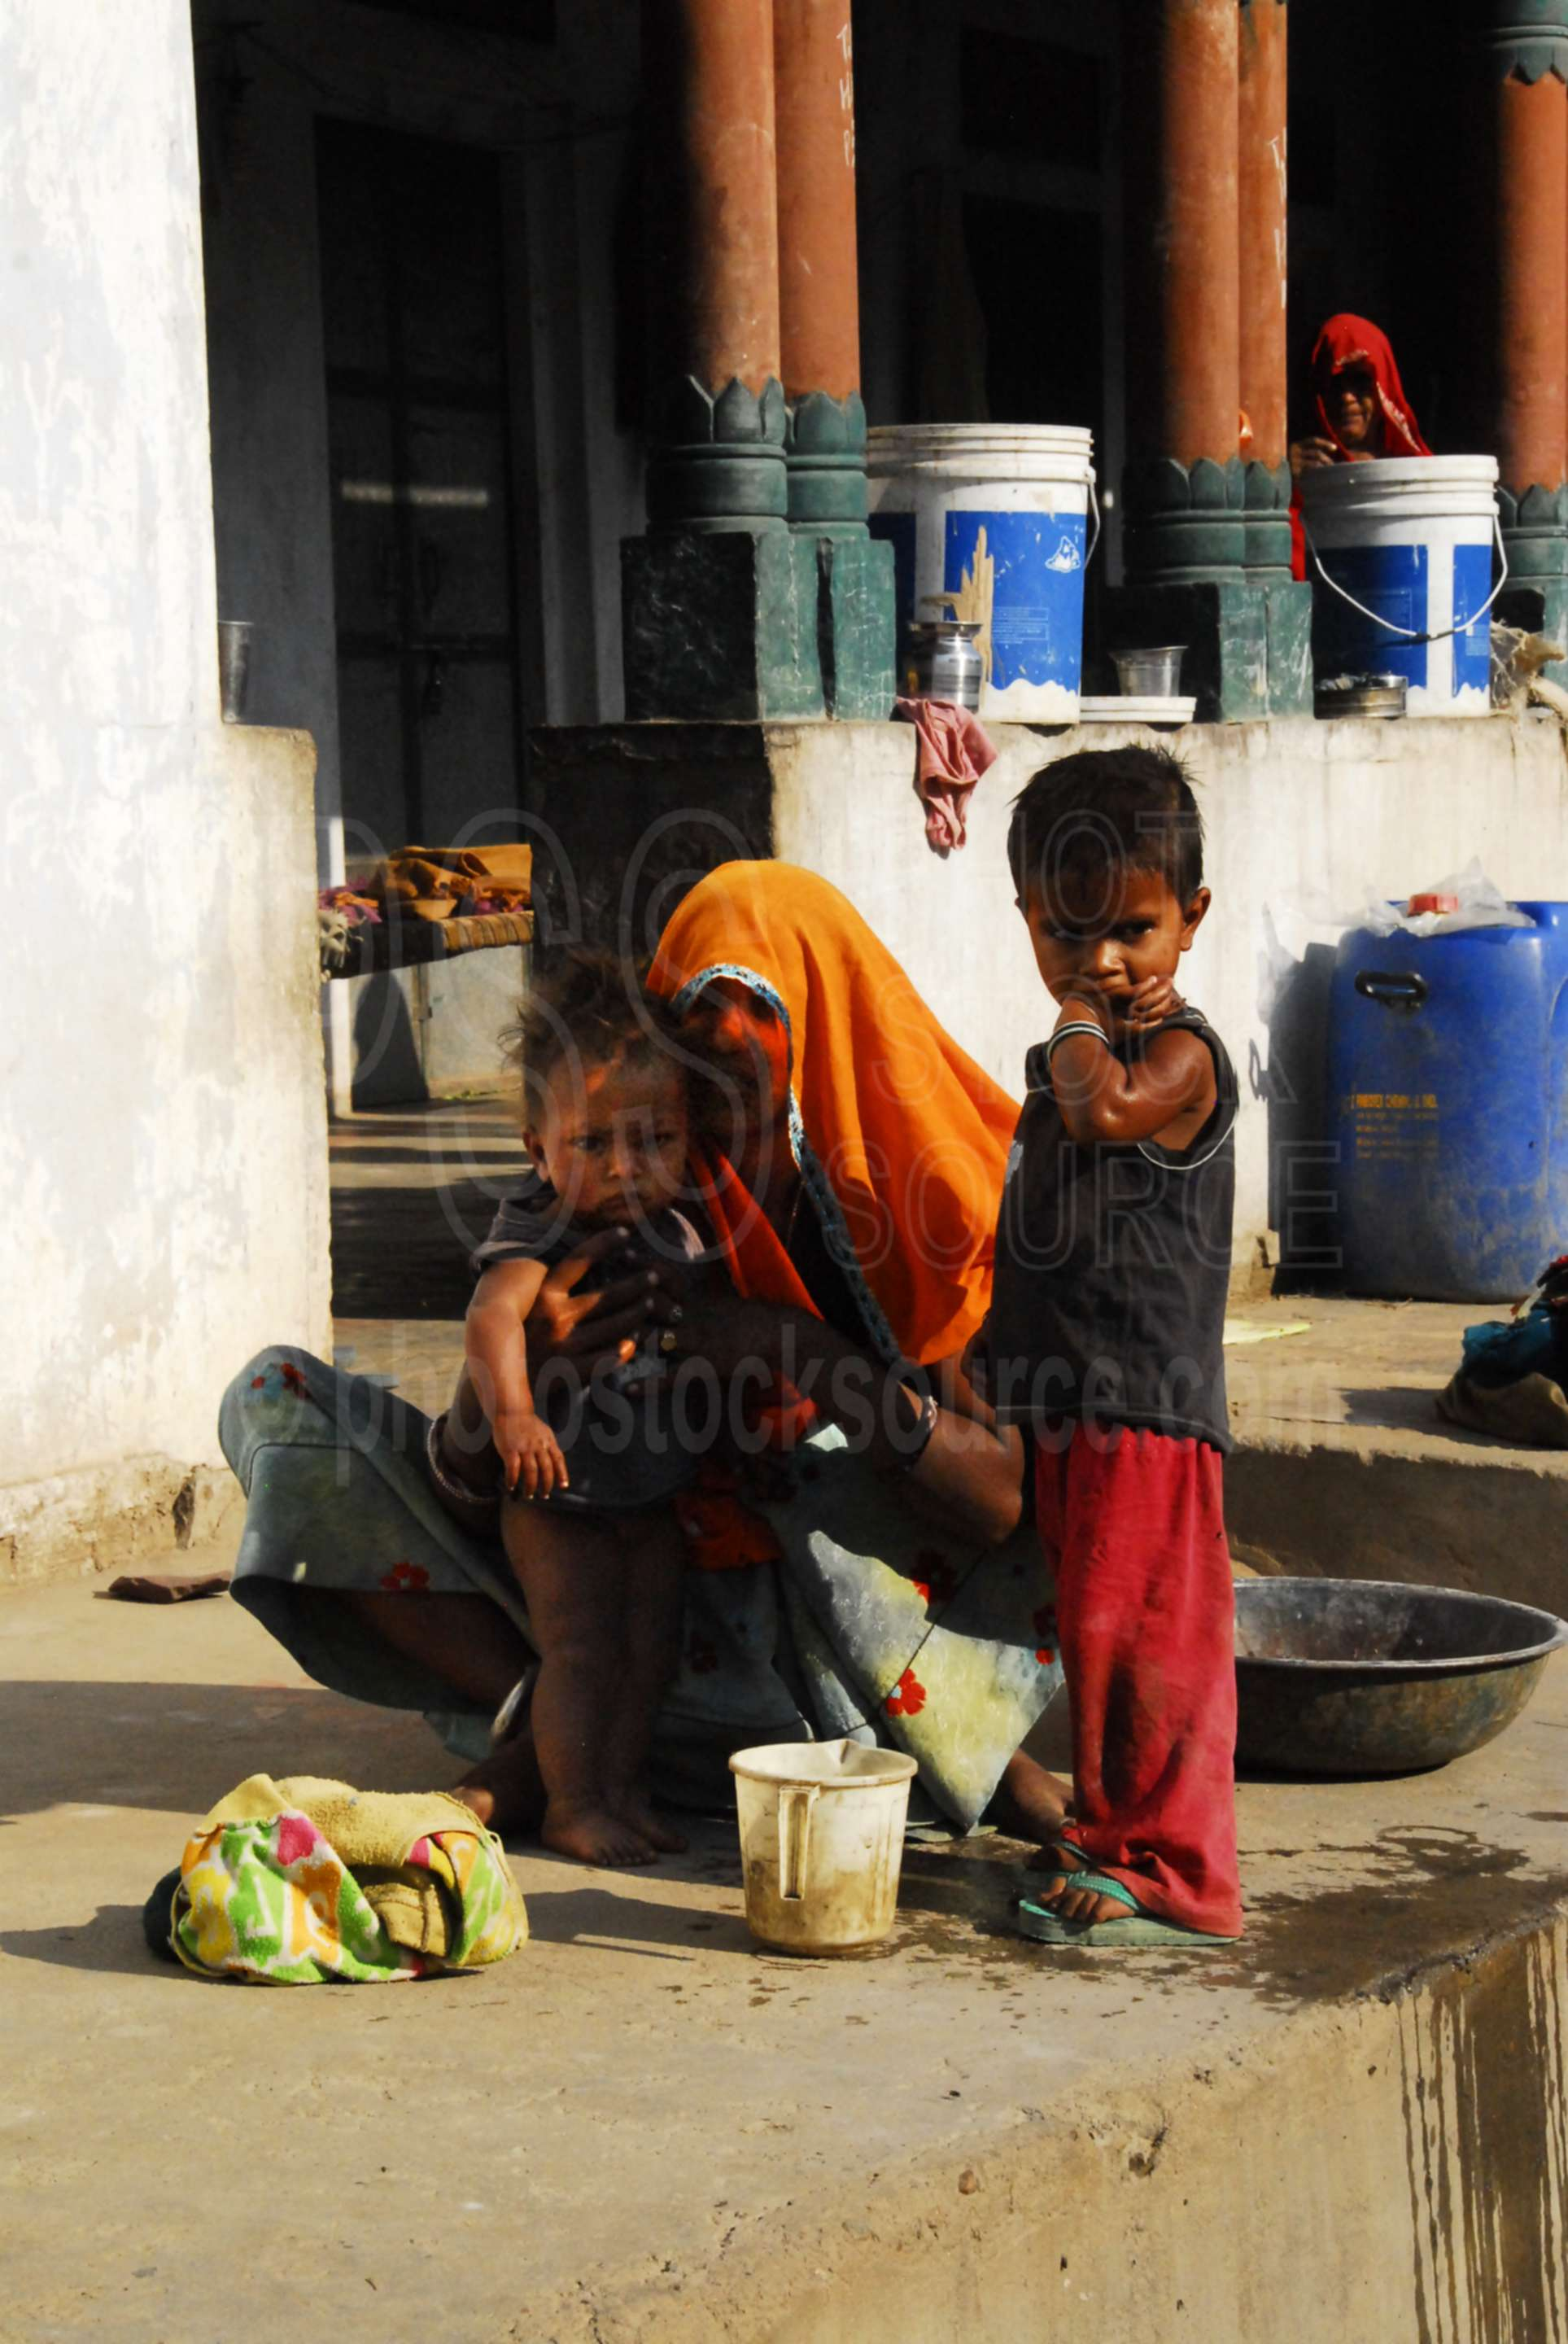 Woman and Children,woman,morning,sitting,child,courtyard,village,cows